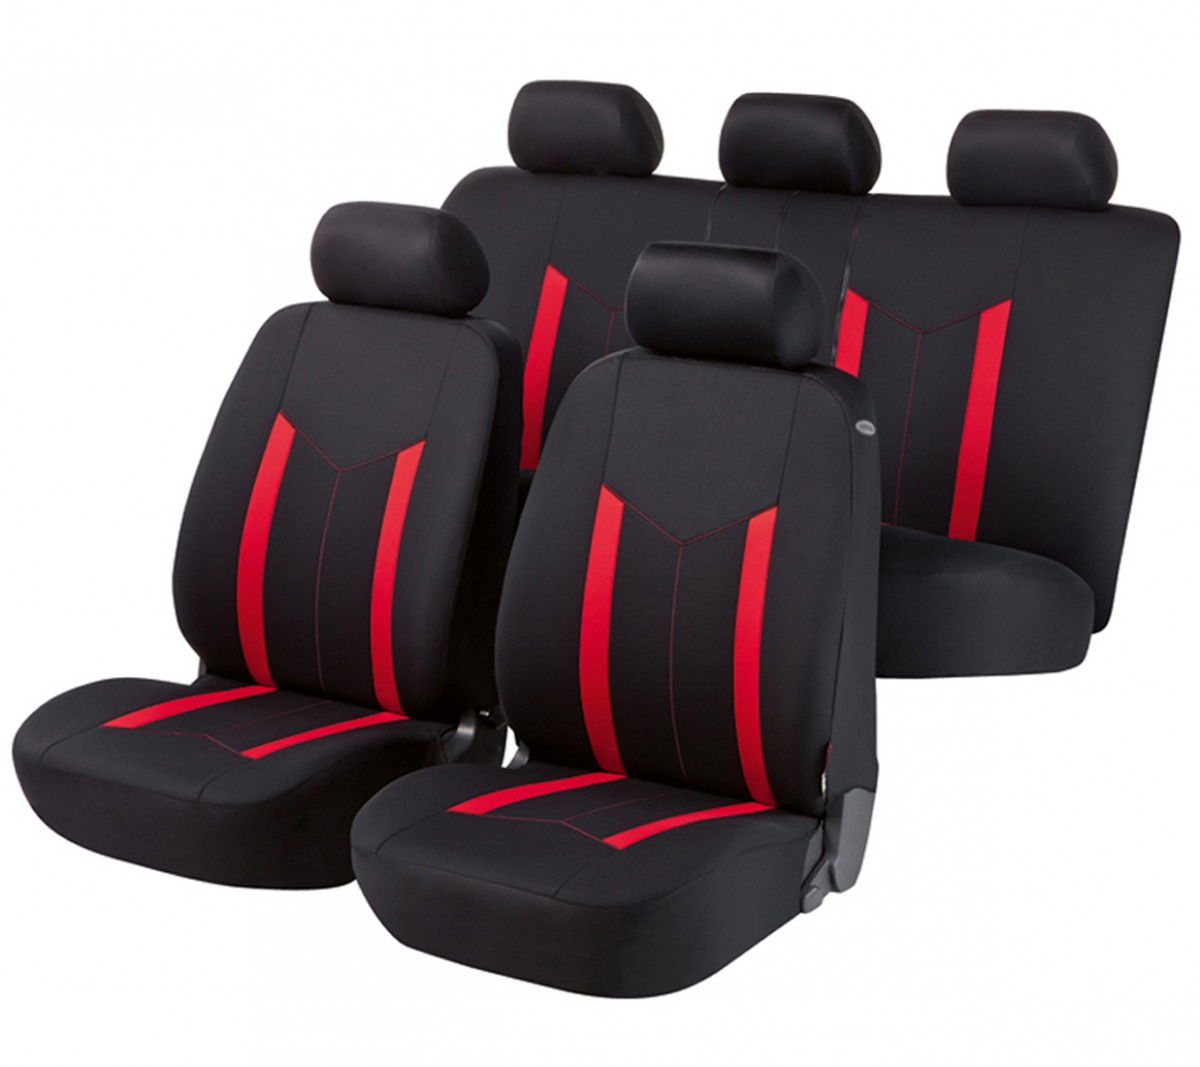 renault thalia housse si ge auto kit complet noir rouge. Black Bedroom Furniture Sets. Home Design Ideas